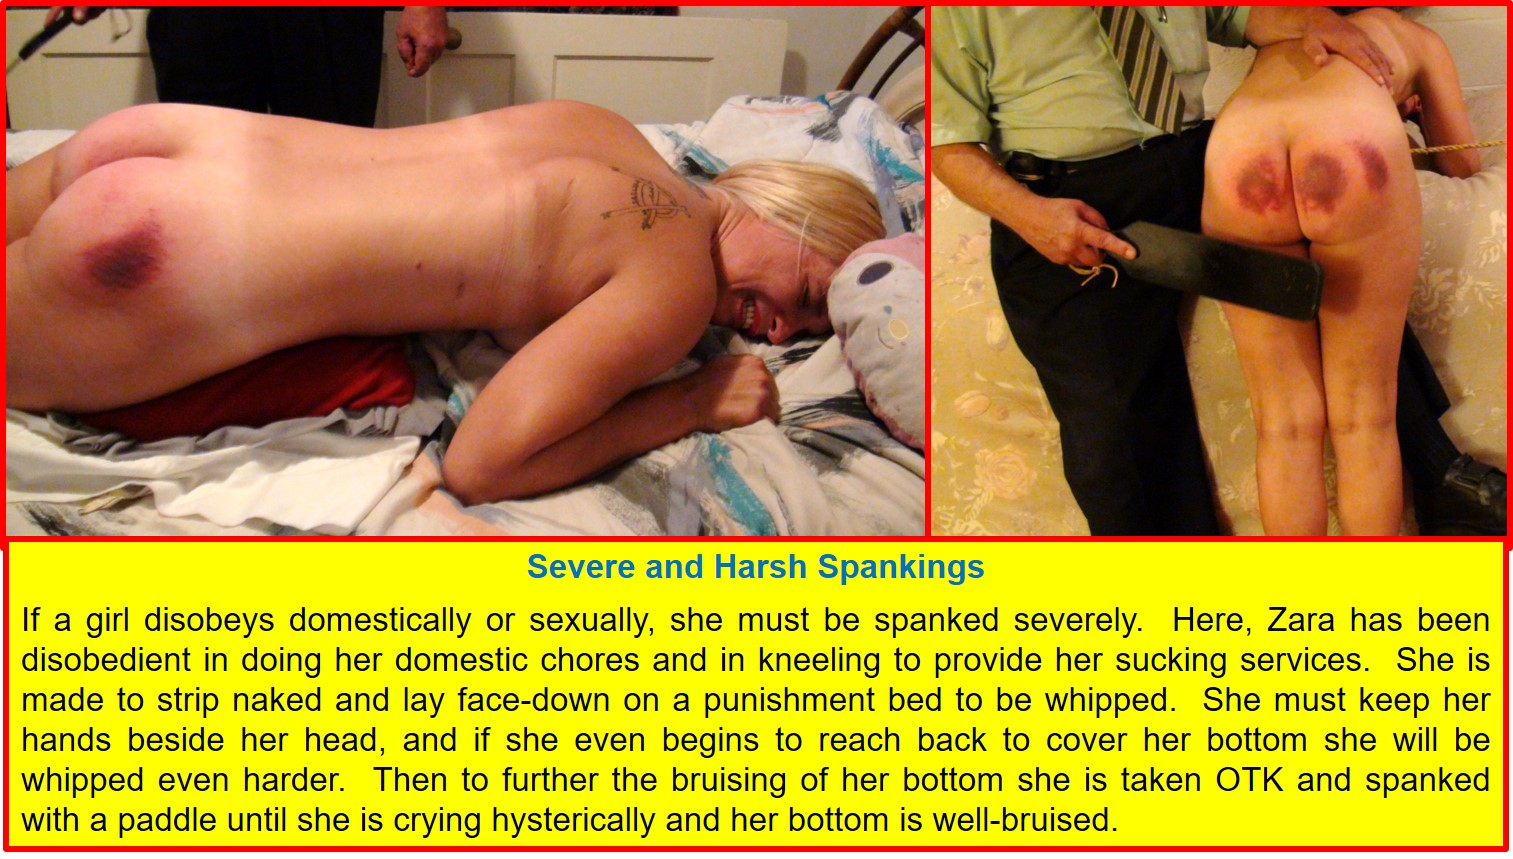 19-y.o._Severe and Harsh Spankings